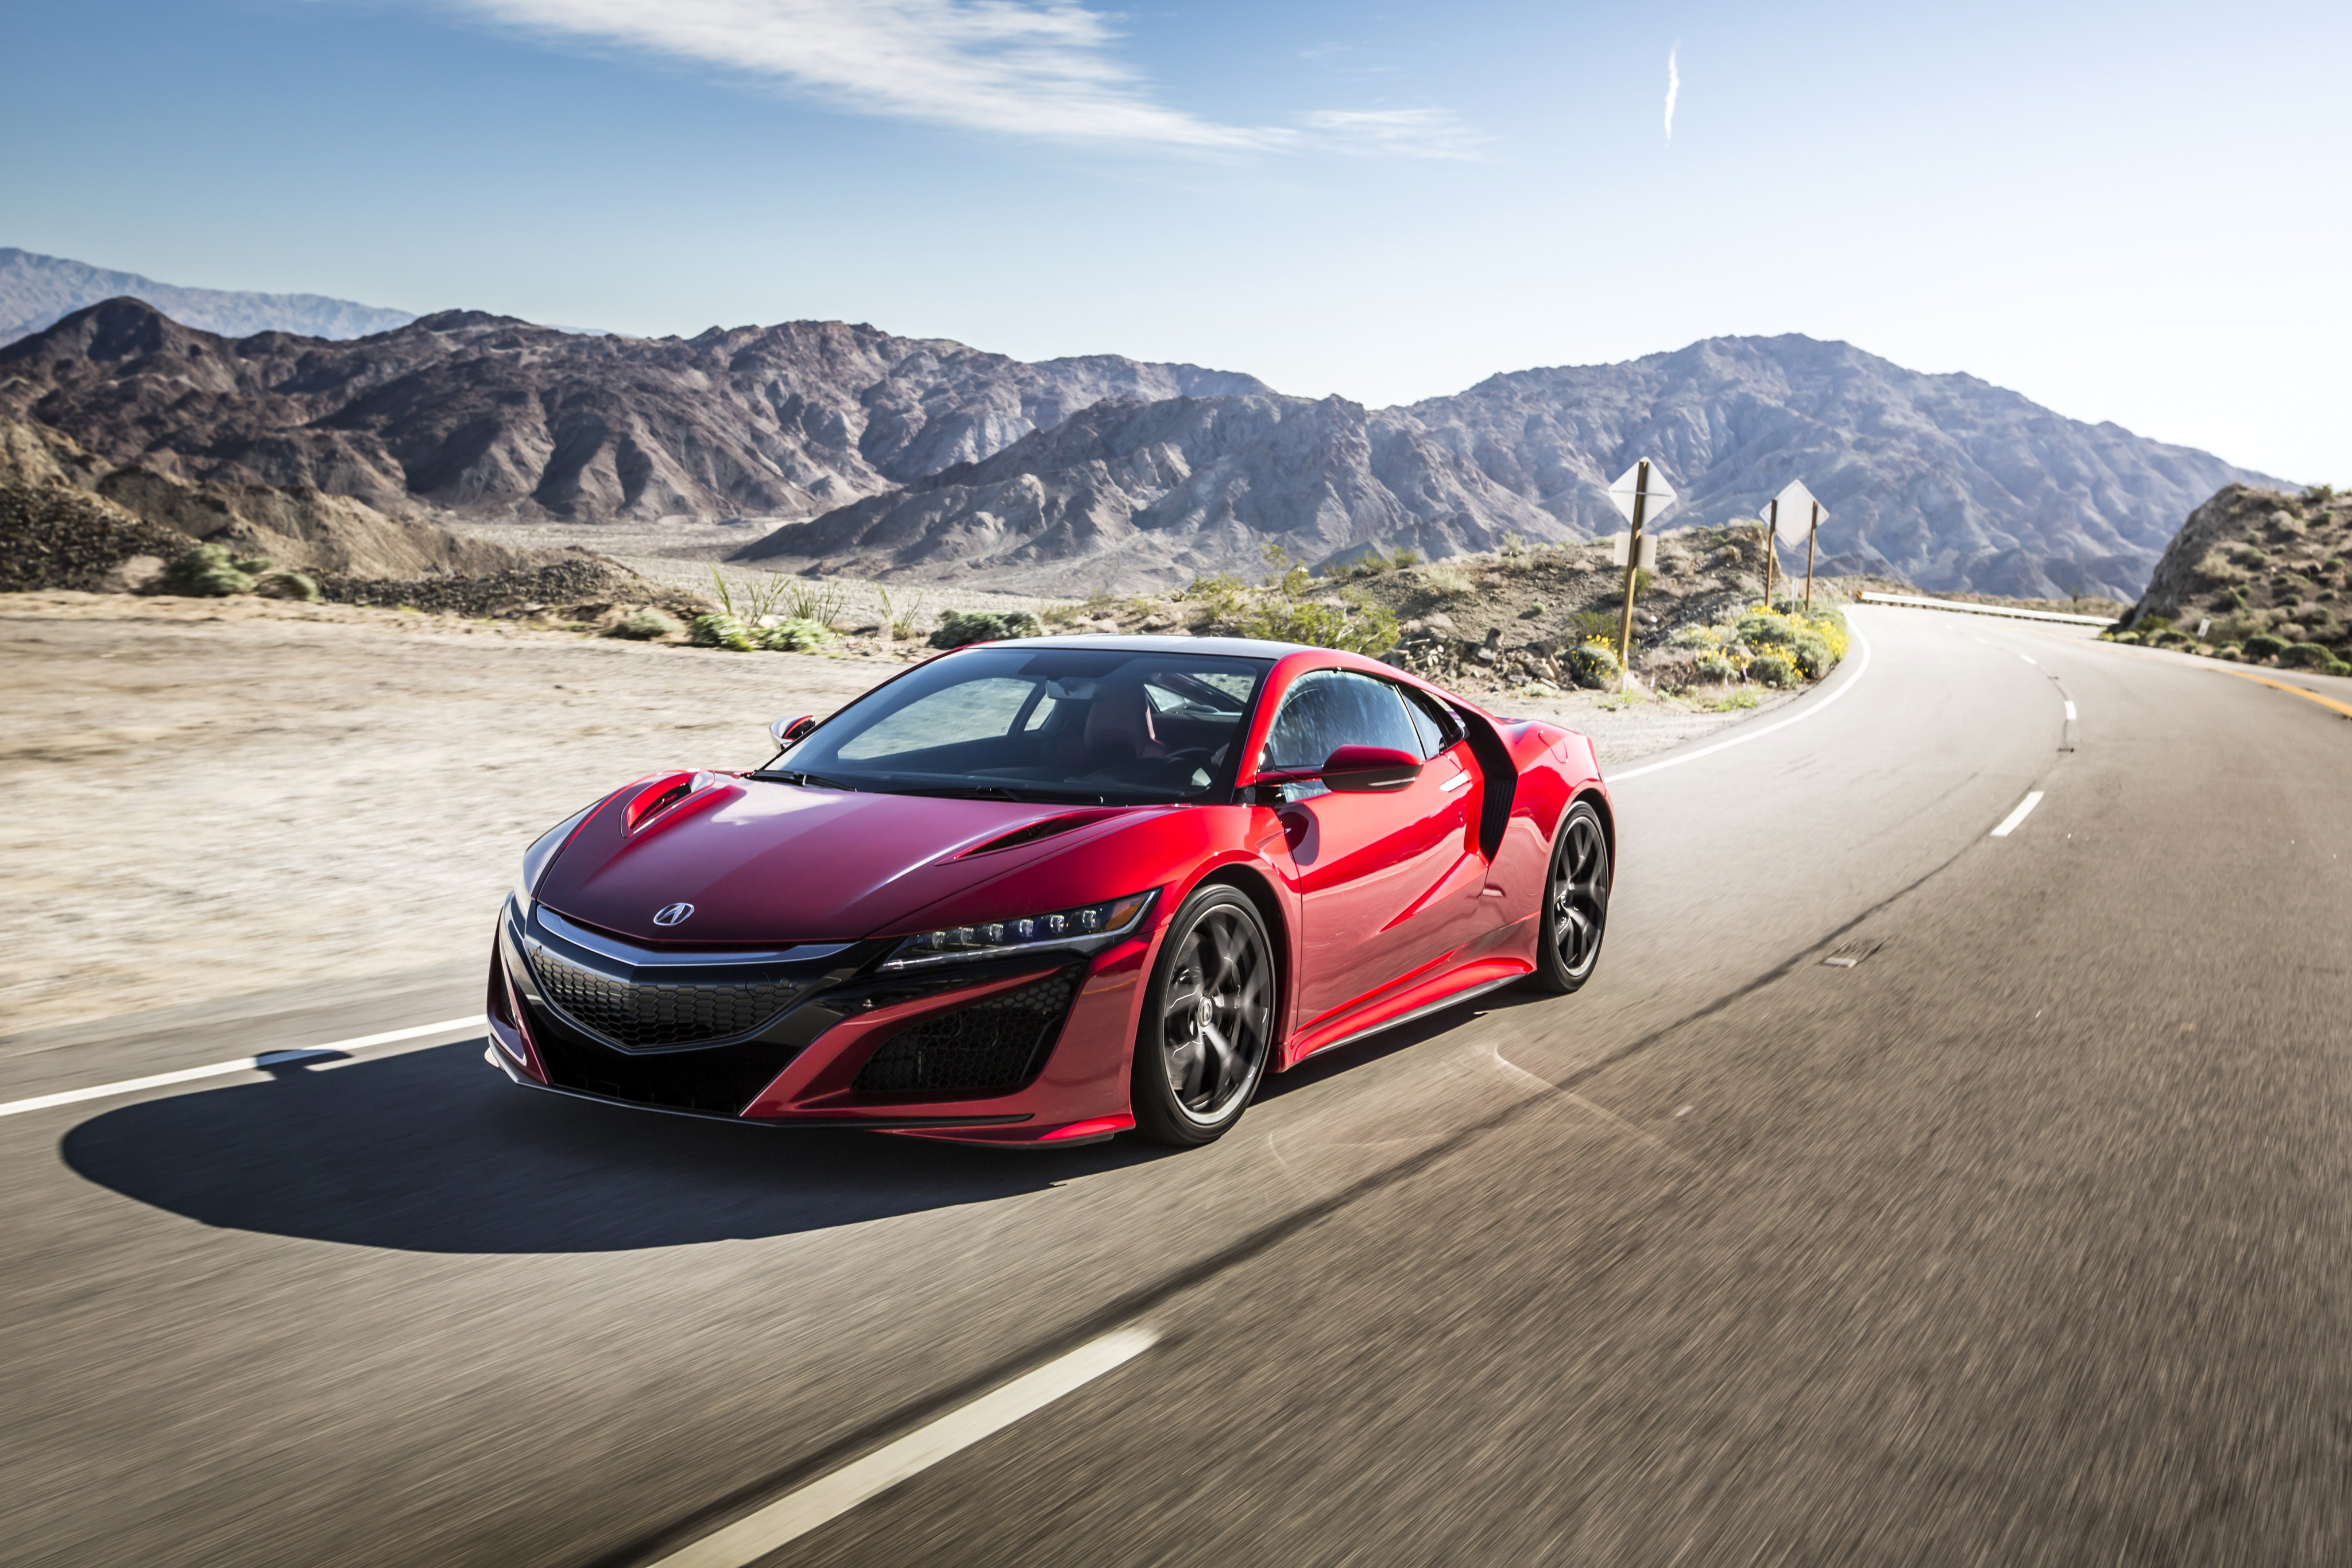 26 Acura NSX HD Wallpapers | Background Images - Wallpaper ... Acura Nsx Wallpaper